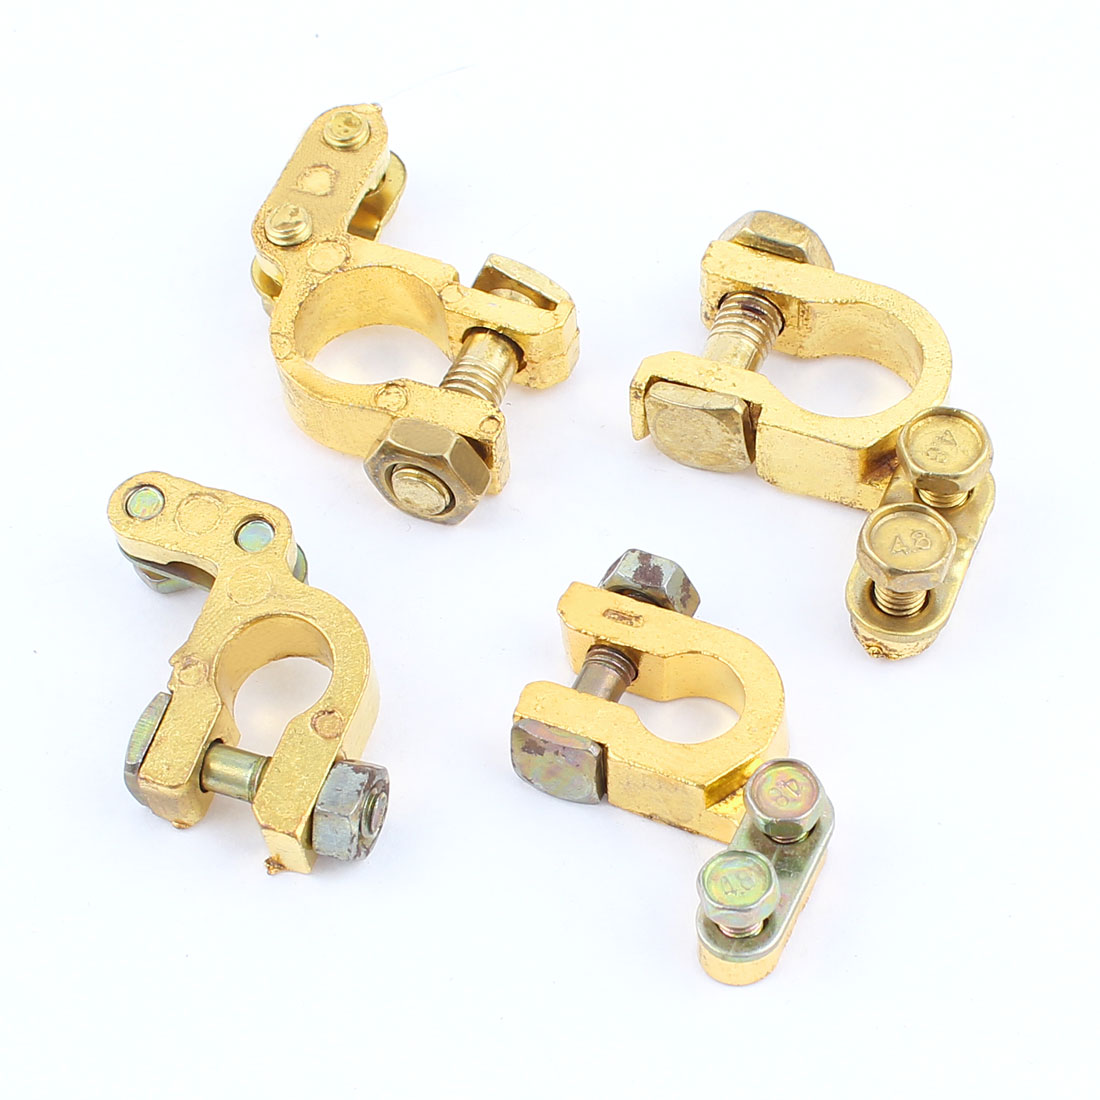 4PCS Car Vehicle 6V 12V Angle Type Battery Terminals Positive Negative Clamps